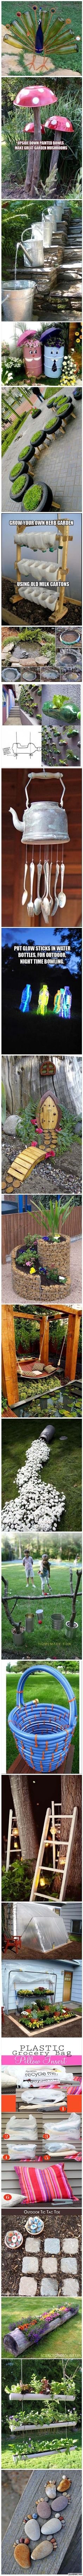 View -Simple Outdoor Ideas That Are Borderline Genius - On Just DWL | The Ultimate Trolling | Mind Games | Funny Photos